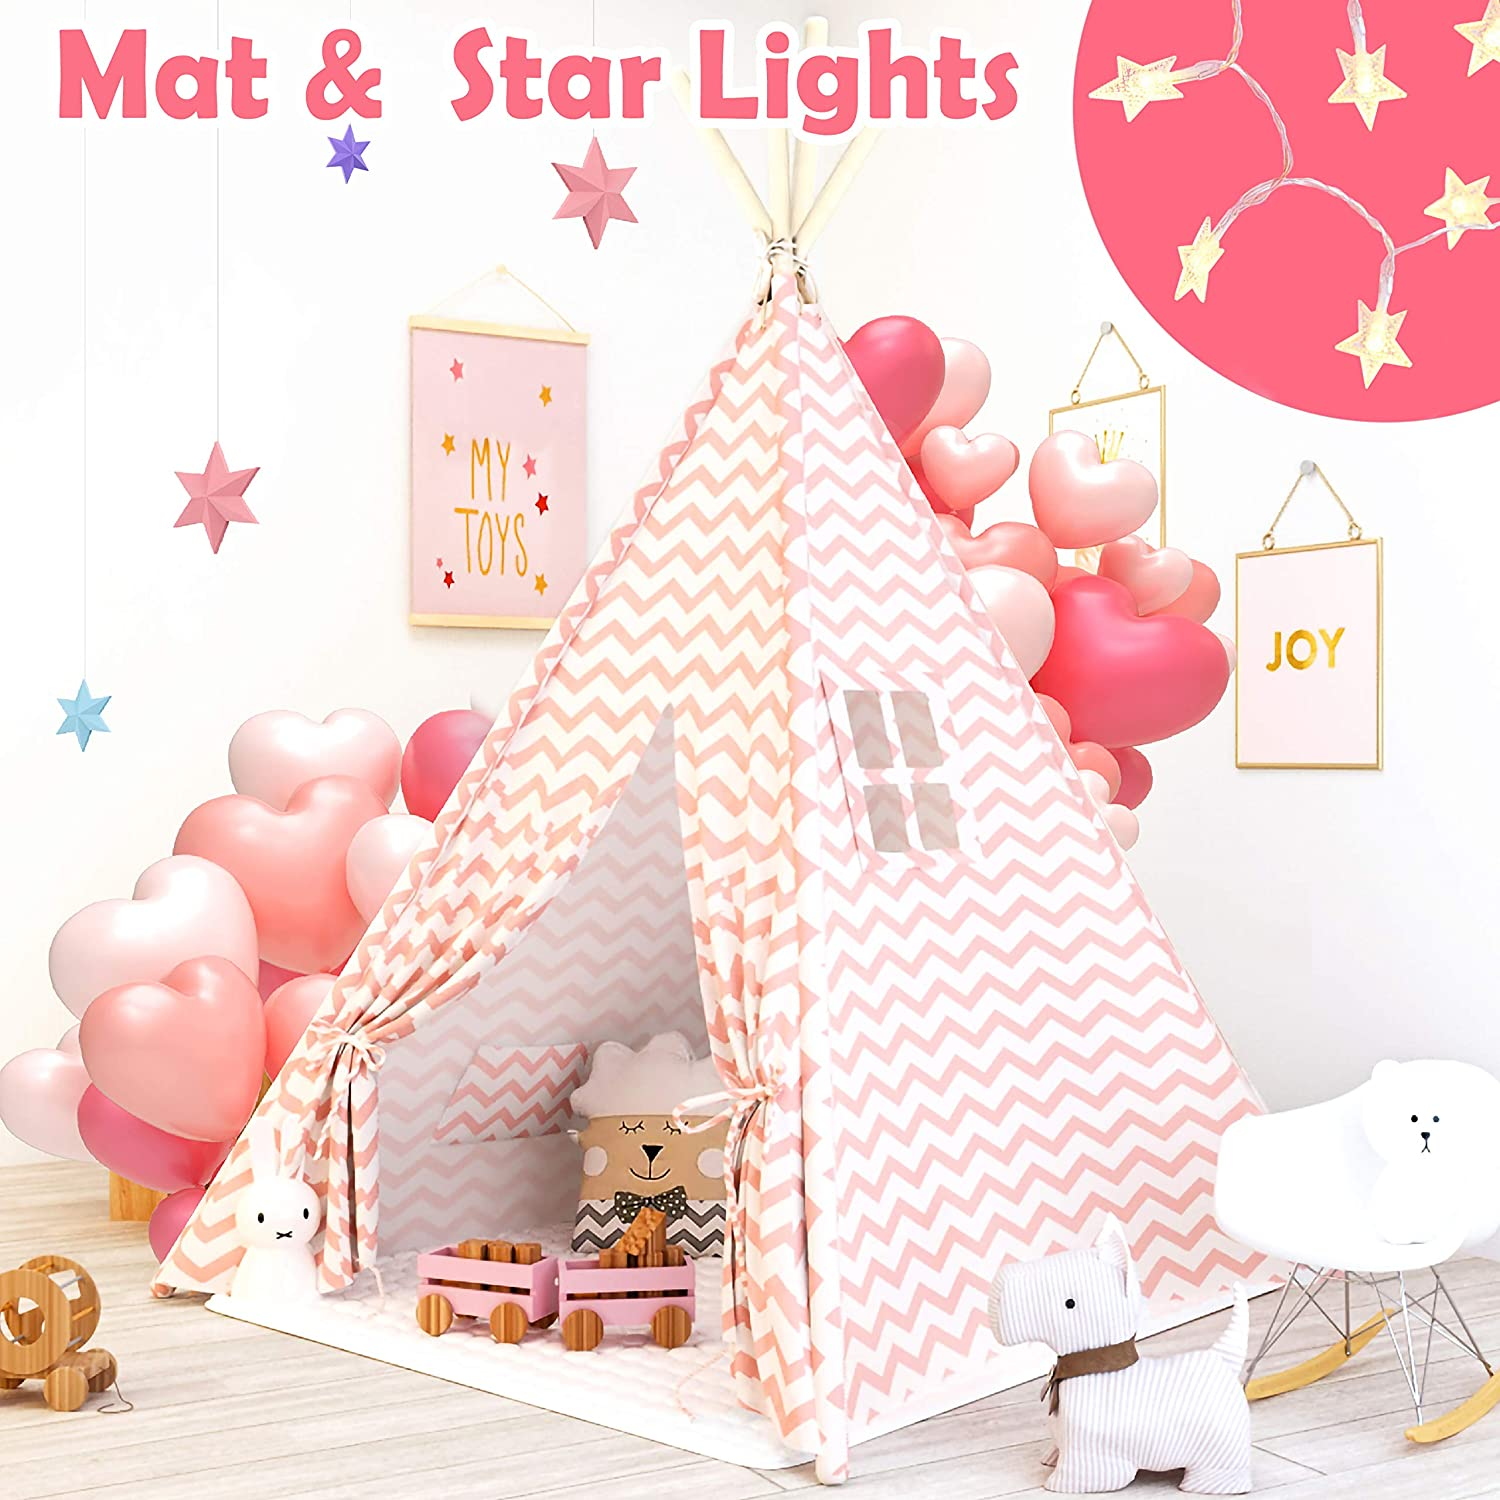 Tiny Land Teepee Tent for Kids with Mat & Light String - Girls Play Tent Pink Chevron Cotton Canvas Tipi